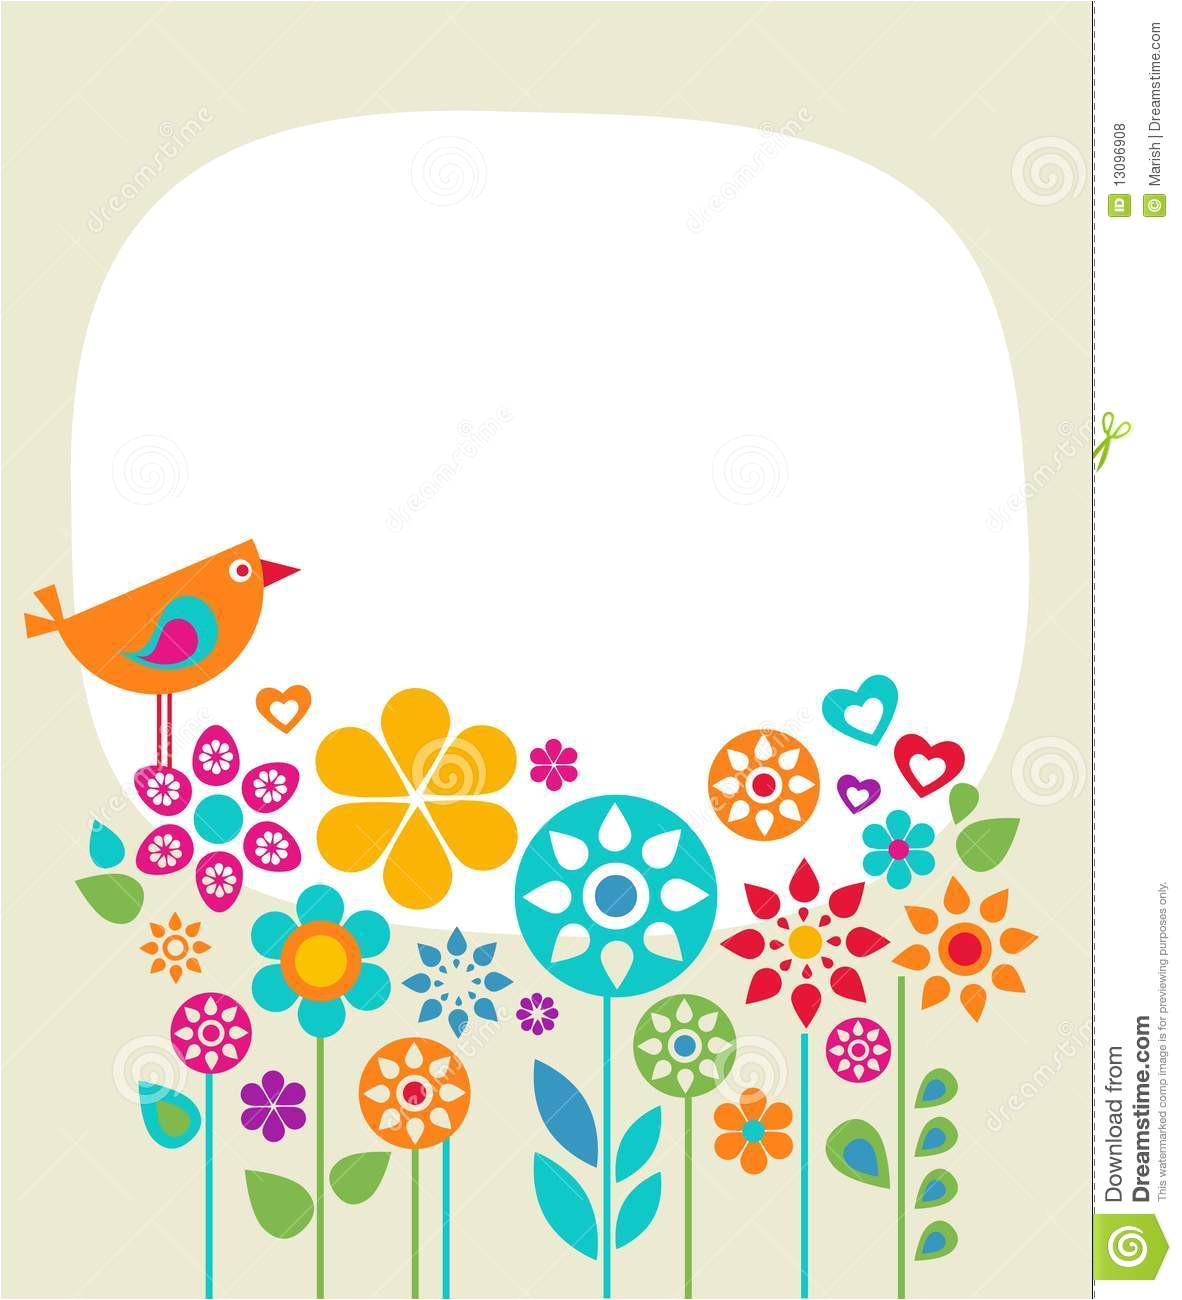 Free Complimentary Cards Templates Easter Card Template 1 Stock Illustration Illustration